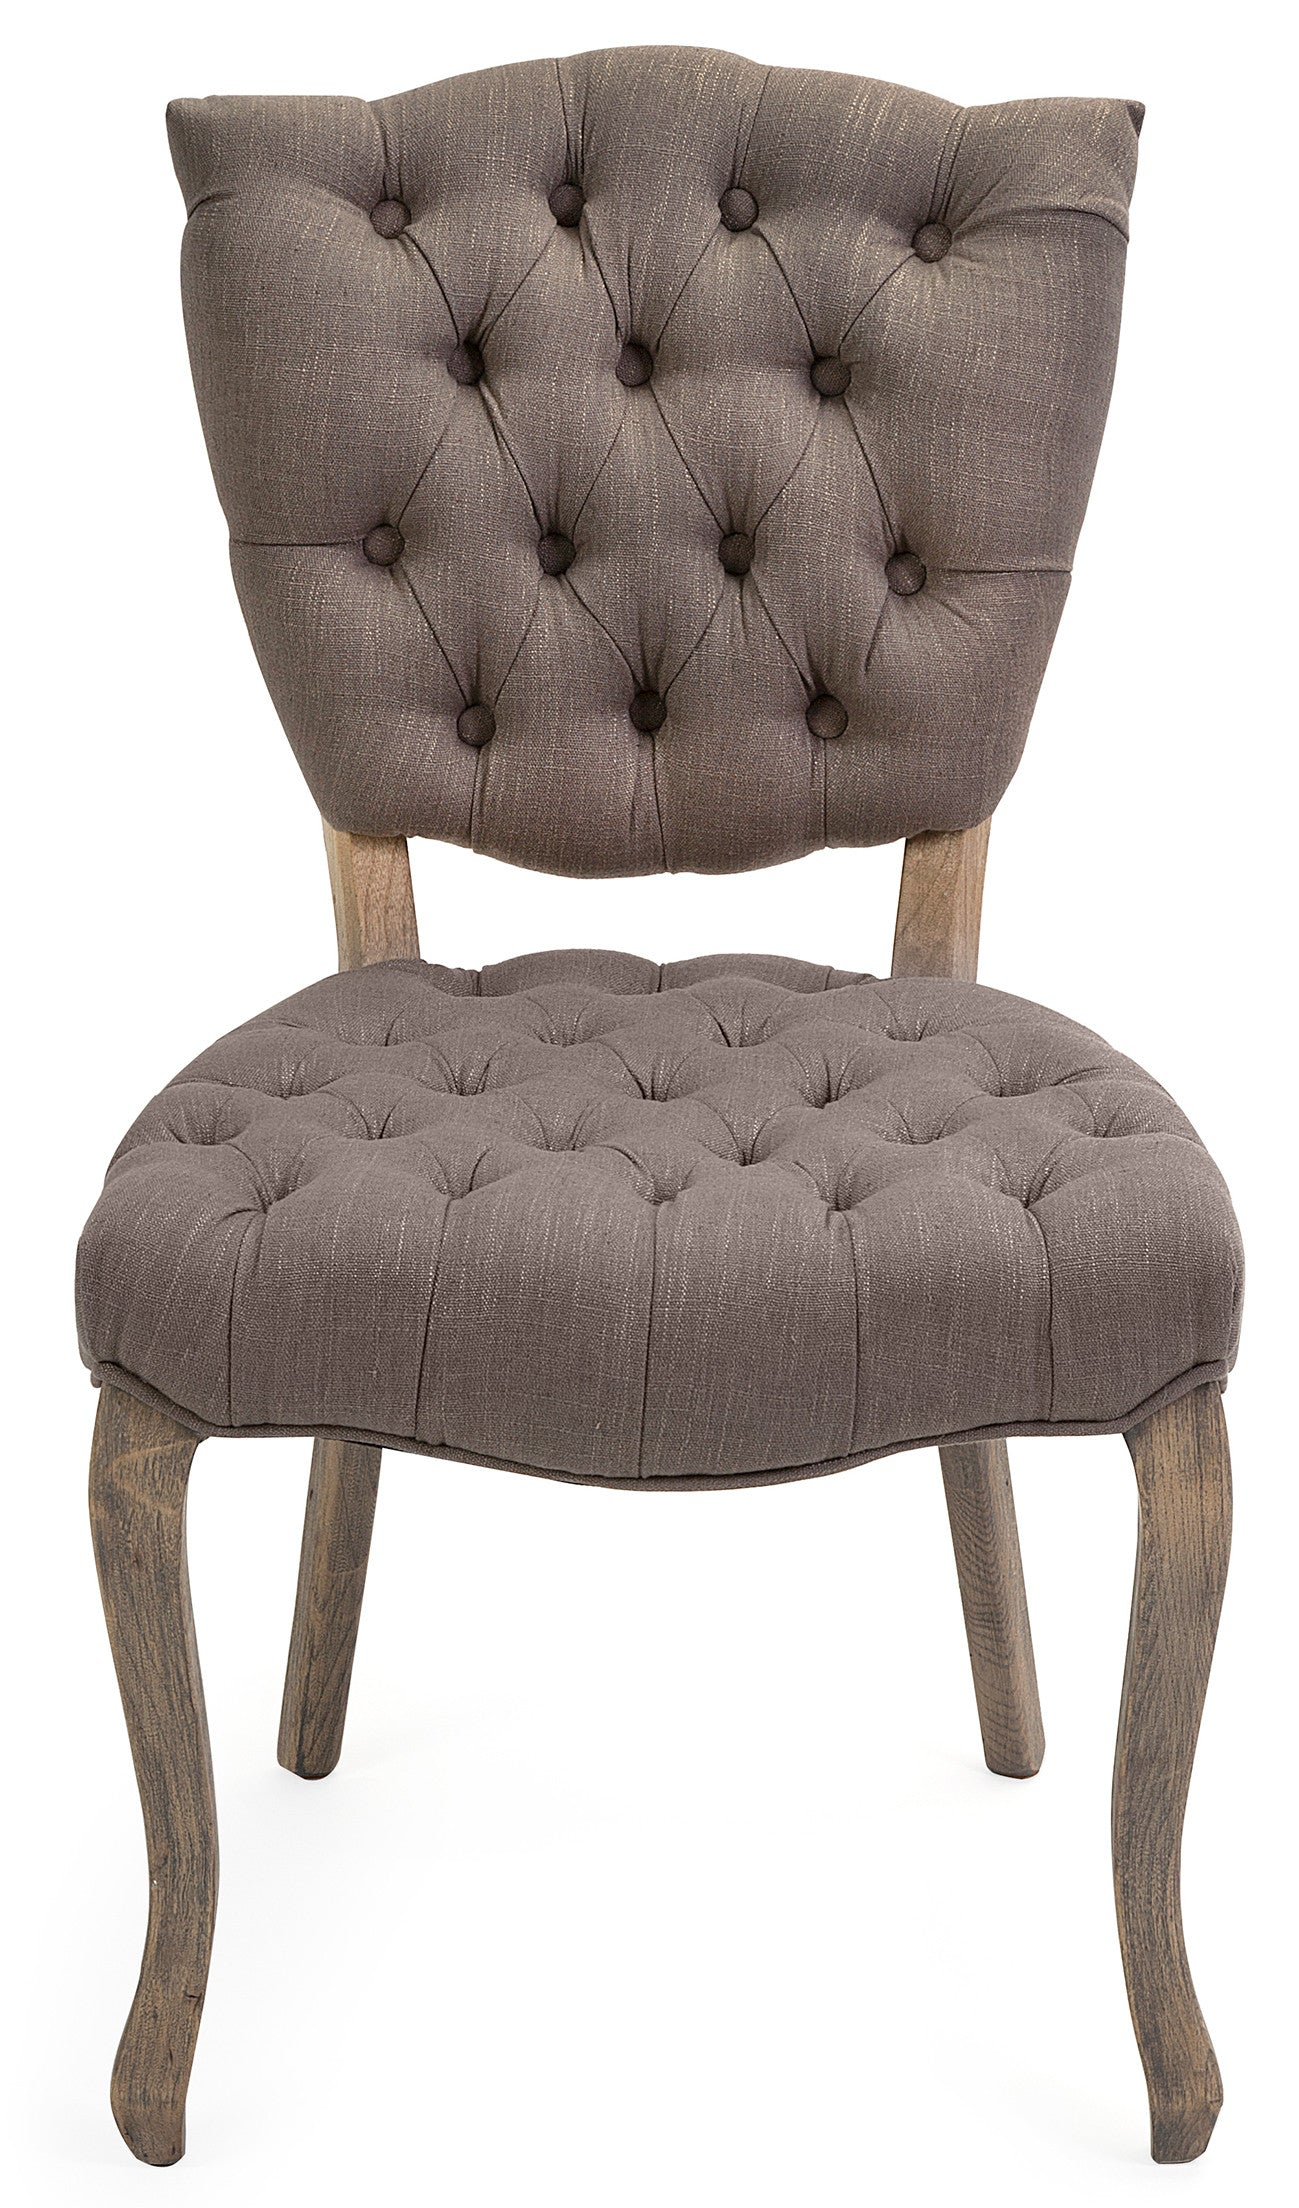 Gray French Chic Tufted Linen Farmhouse Chairs   Set Of 2